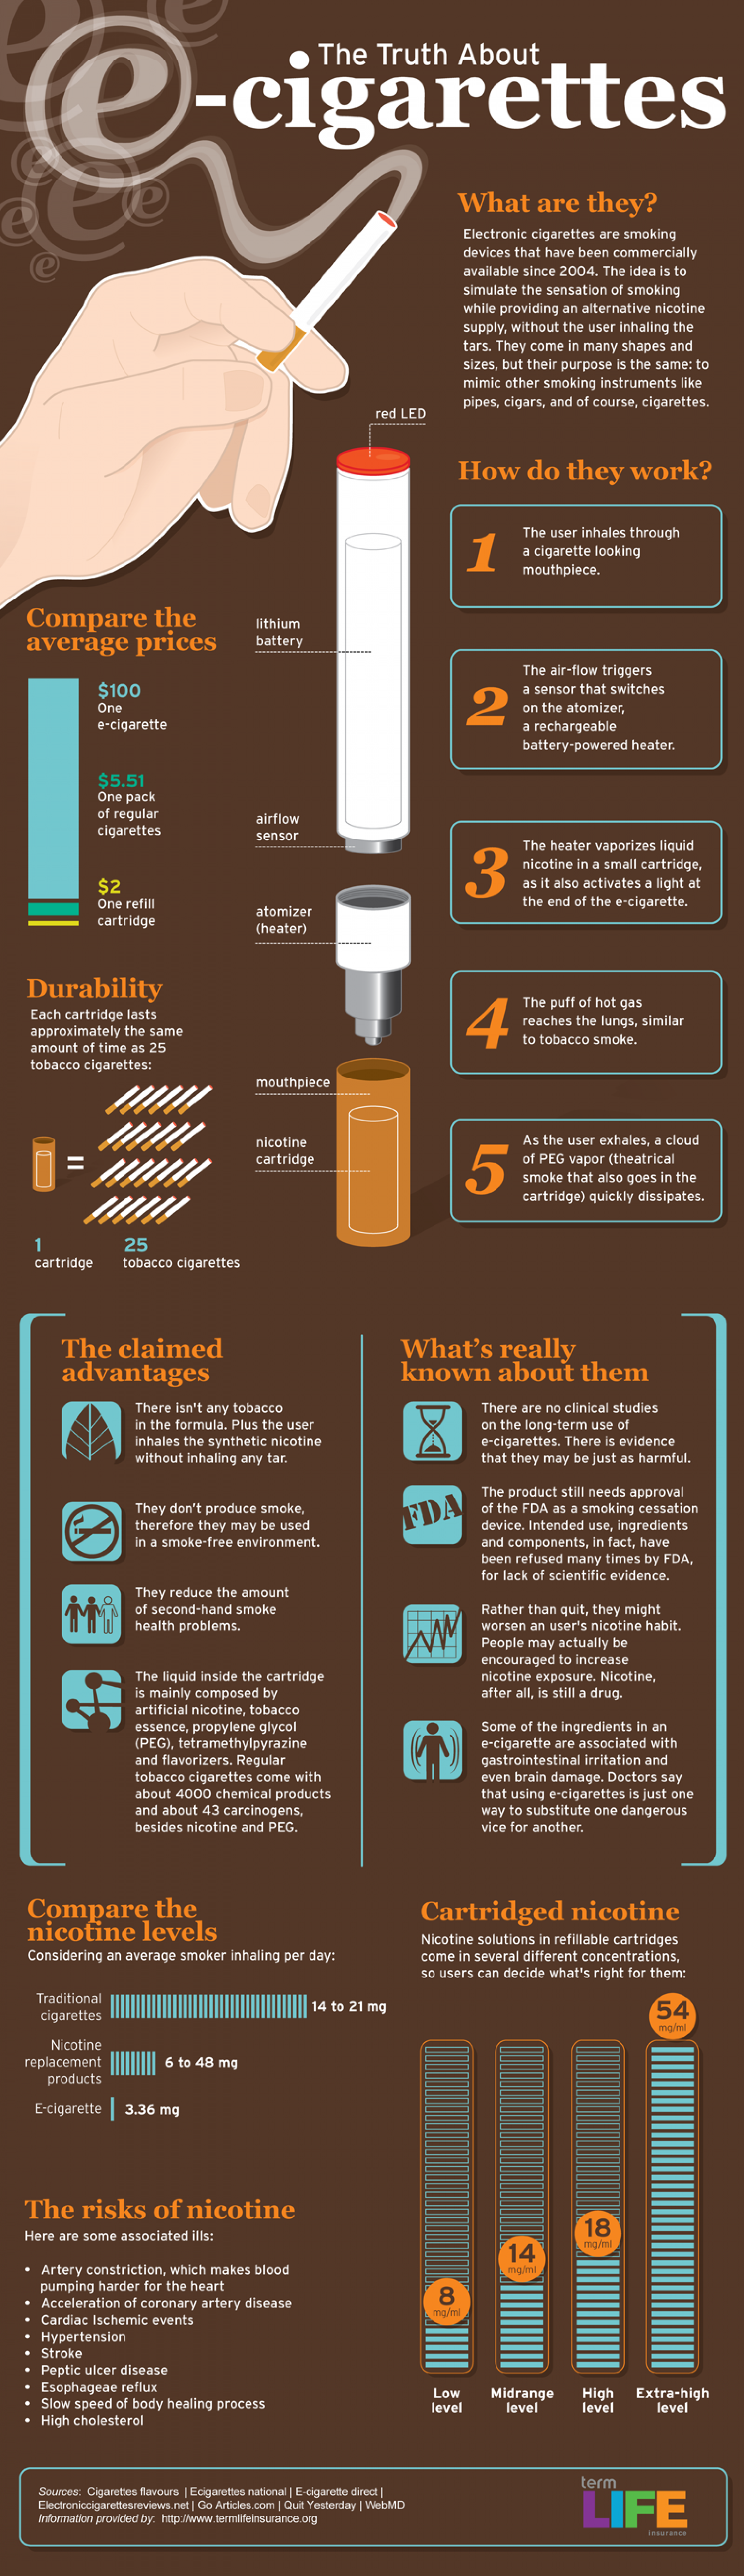 The Truth About e-cigarettes Infographic